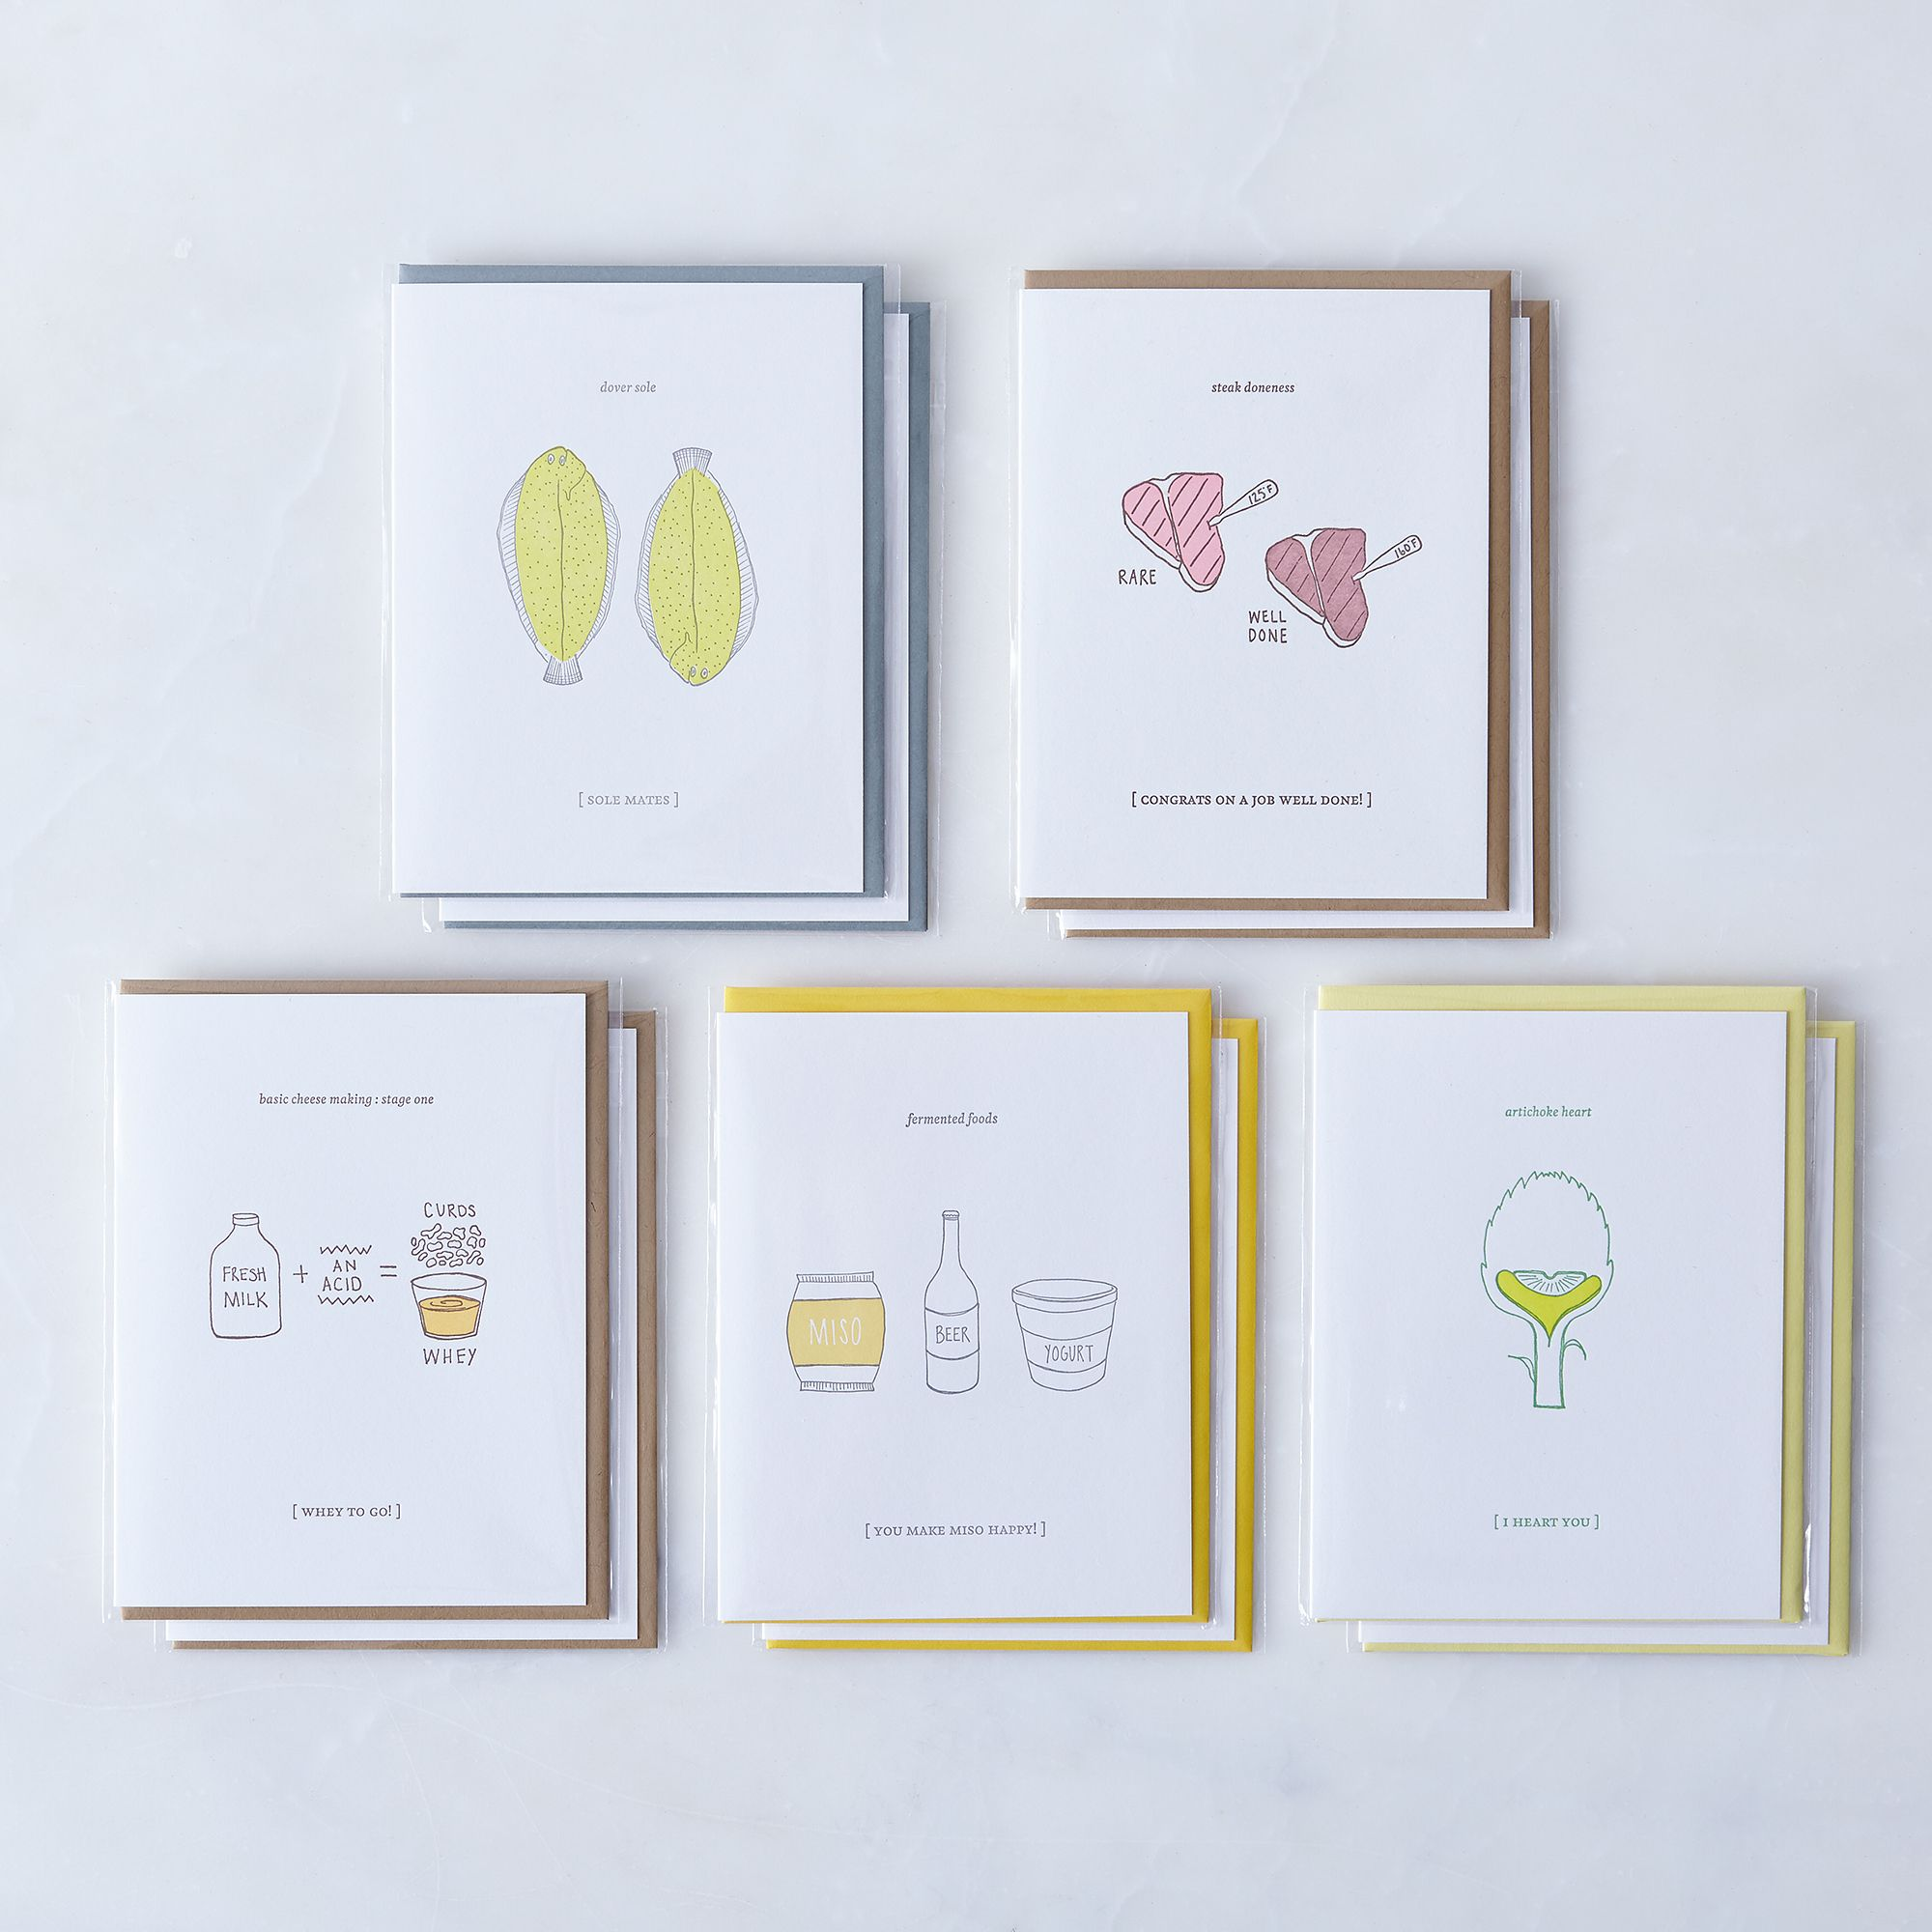 Dc86743d 03af 49ac ac64 92c021157fa8  2016 1014 nourishing notes assorted friendship and love letterpressed cards pack of 10 silo rocky luten 3517